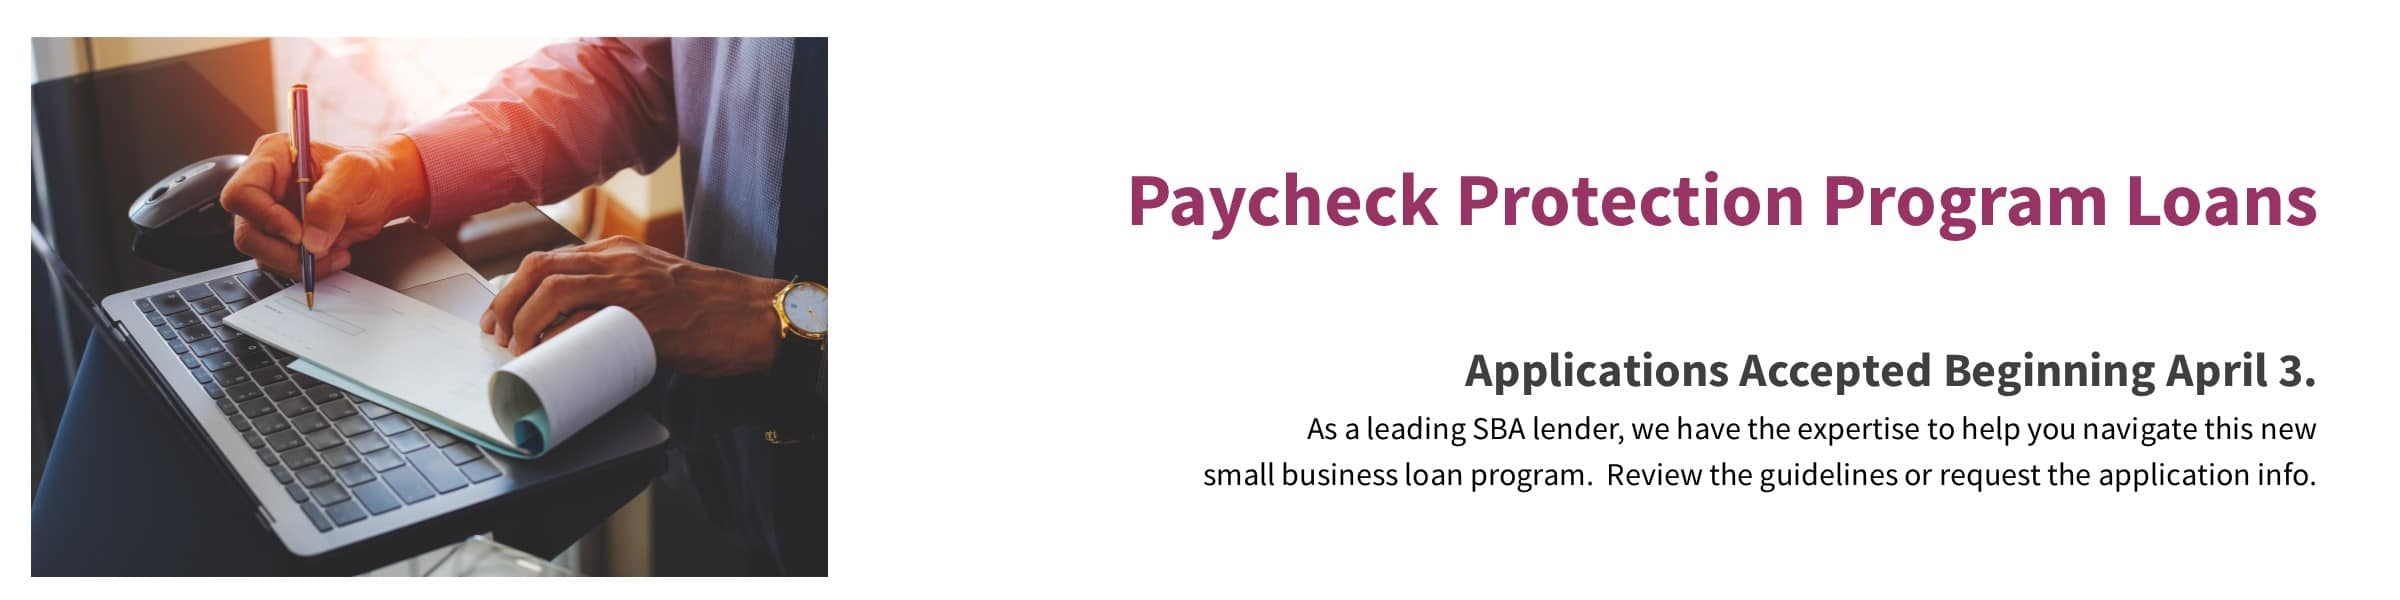 Paycheck Protection Program Loan Applications Accepted Beginning April 3.